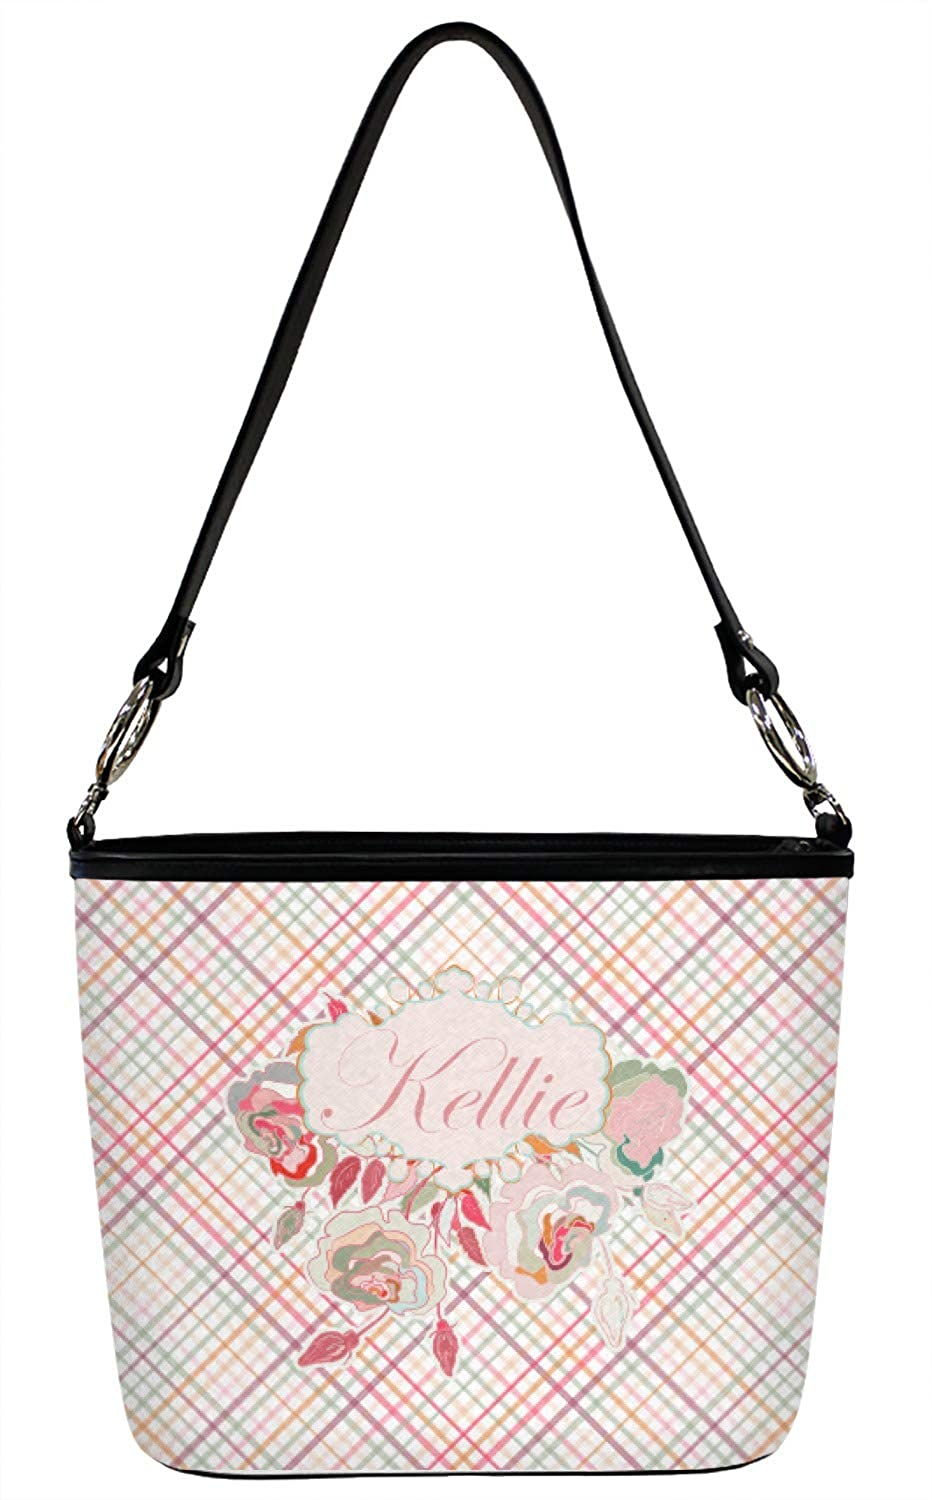 Large Personalized Modern Plaid /& Floral Bucket Bag w//Genuine Leather Trim Front /& Back